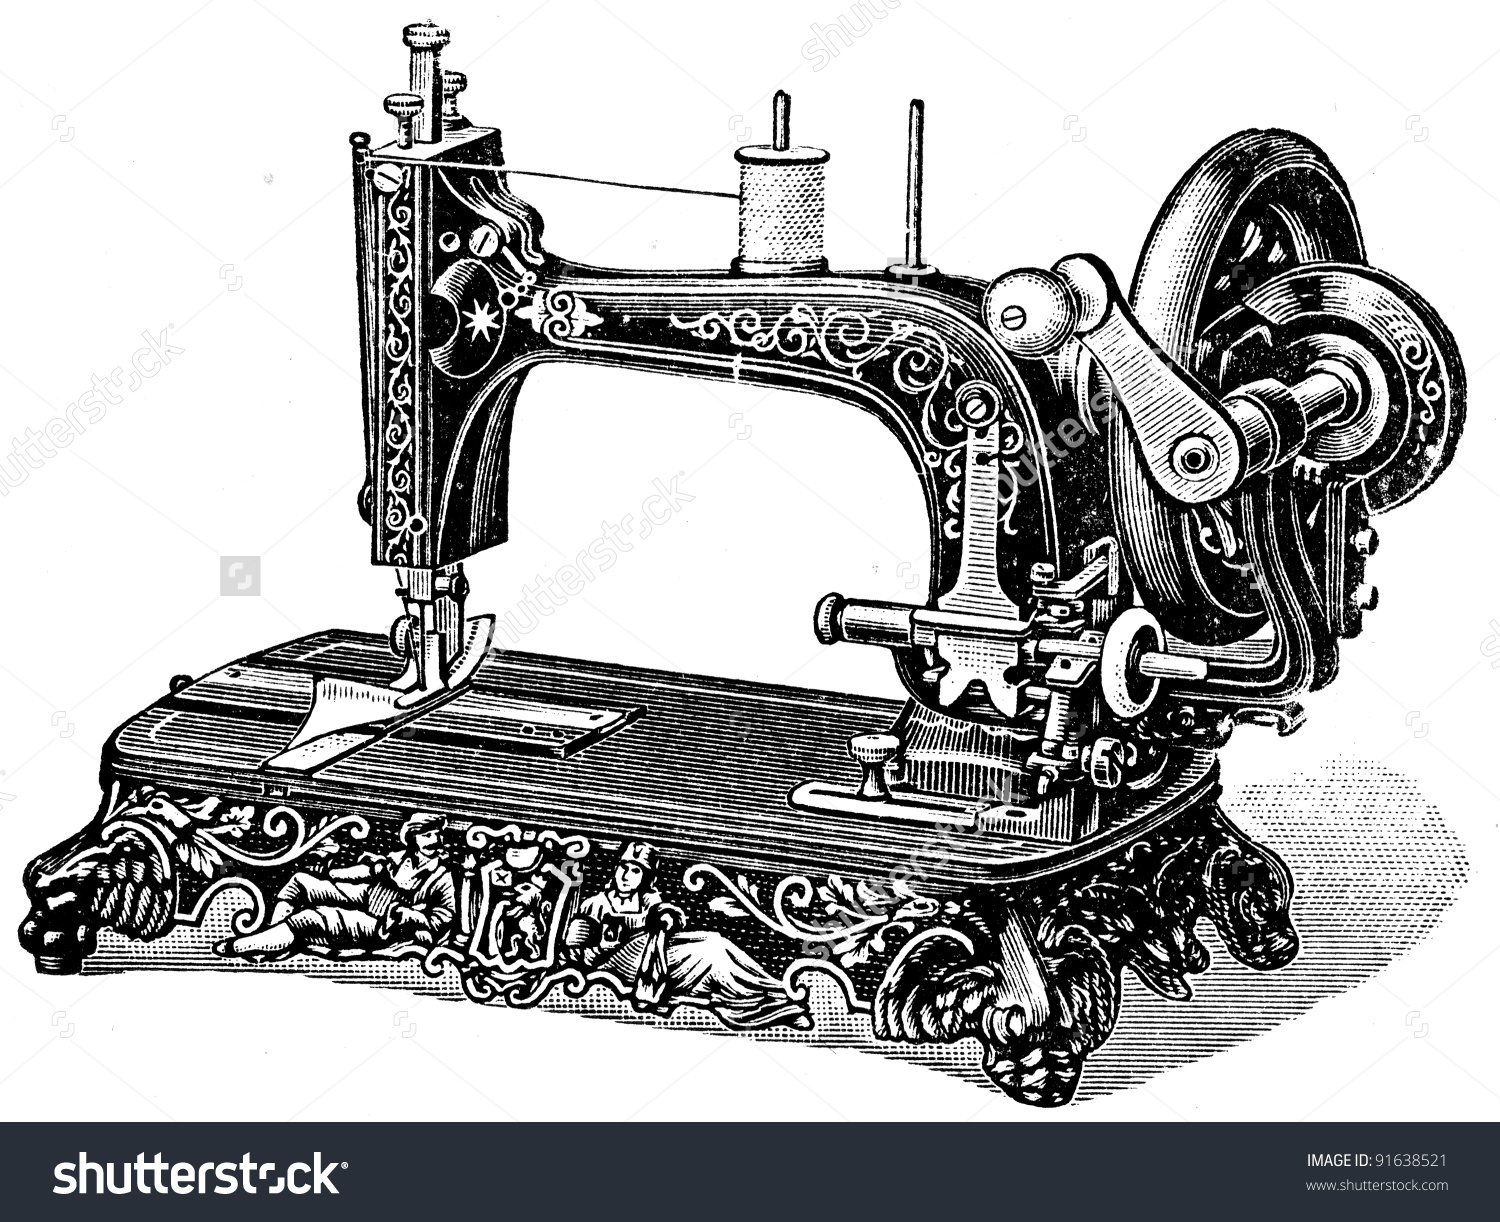 Hand Sewing Machine Meissen Illustration Encyclopedia Stock Photo.